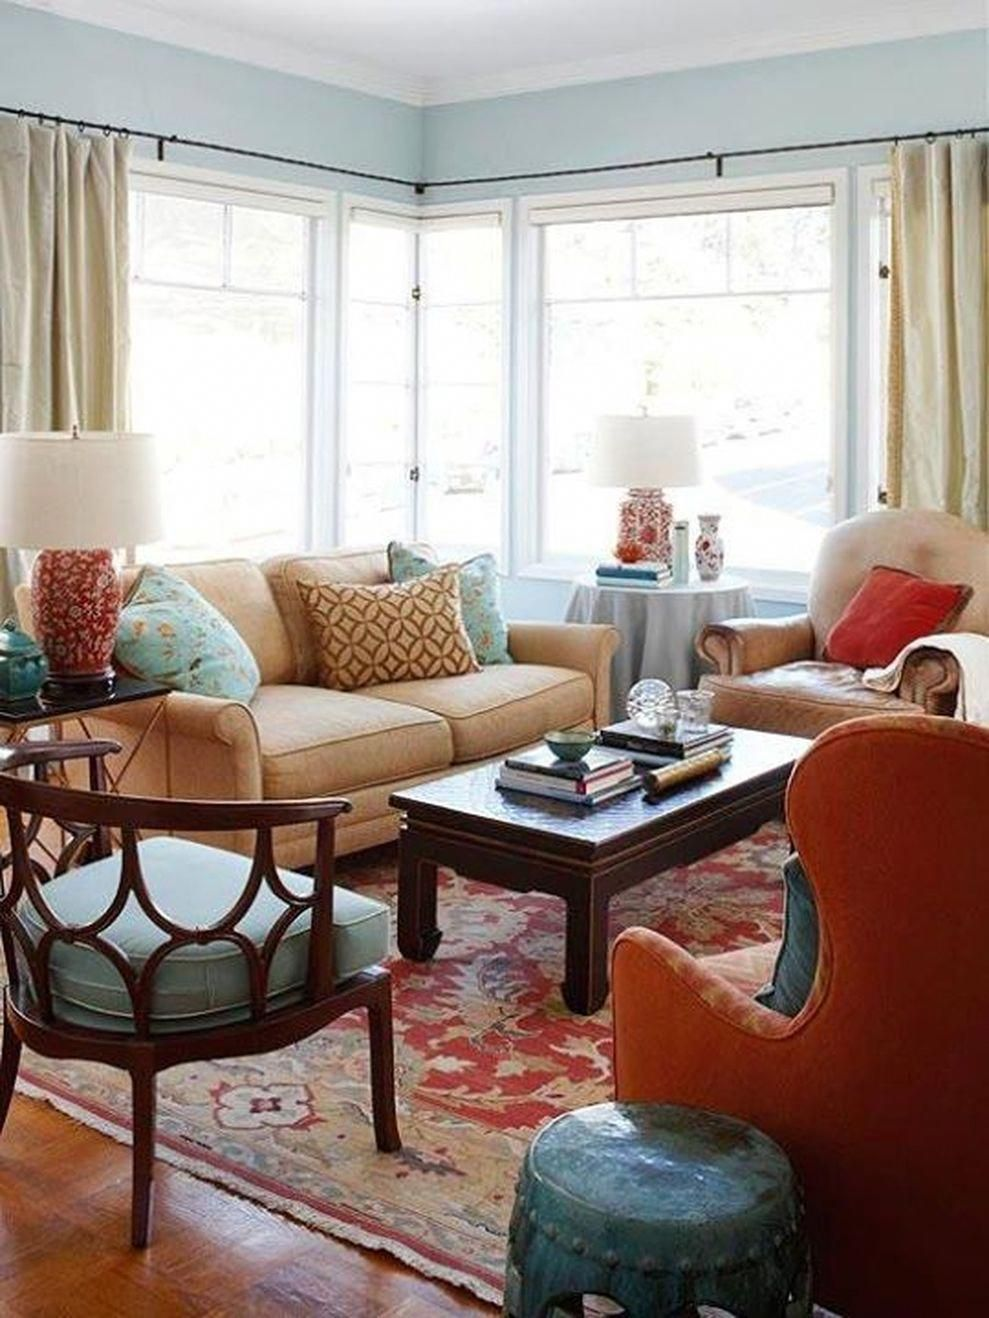 Adorable burnt orange and teal living room ideas 03 # ...